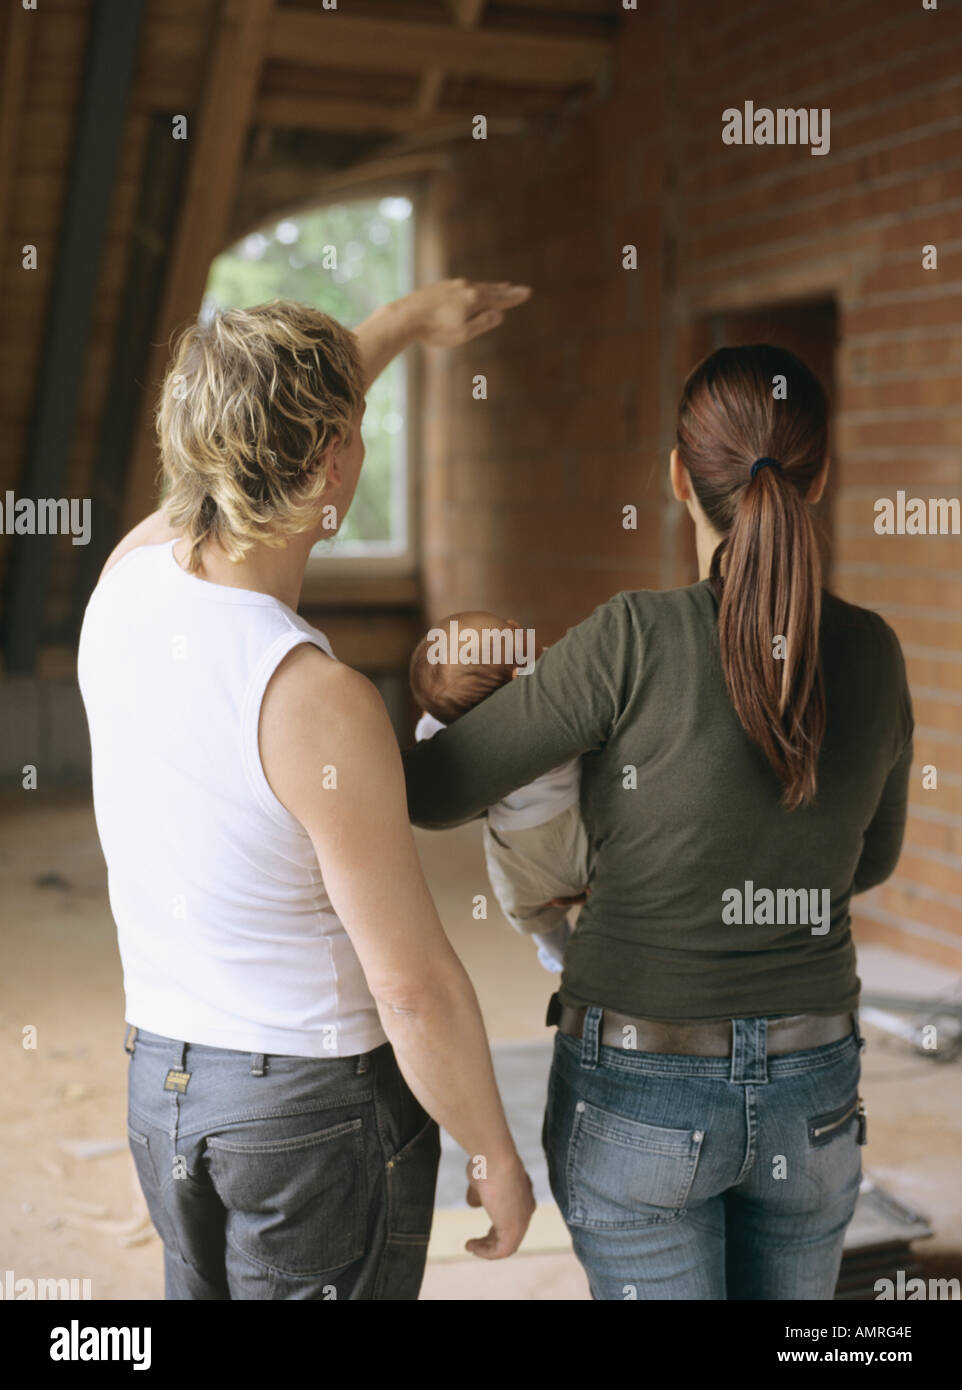 Young family visiting their future home - Stock Image